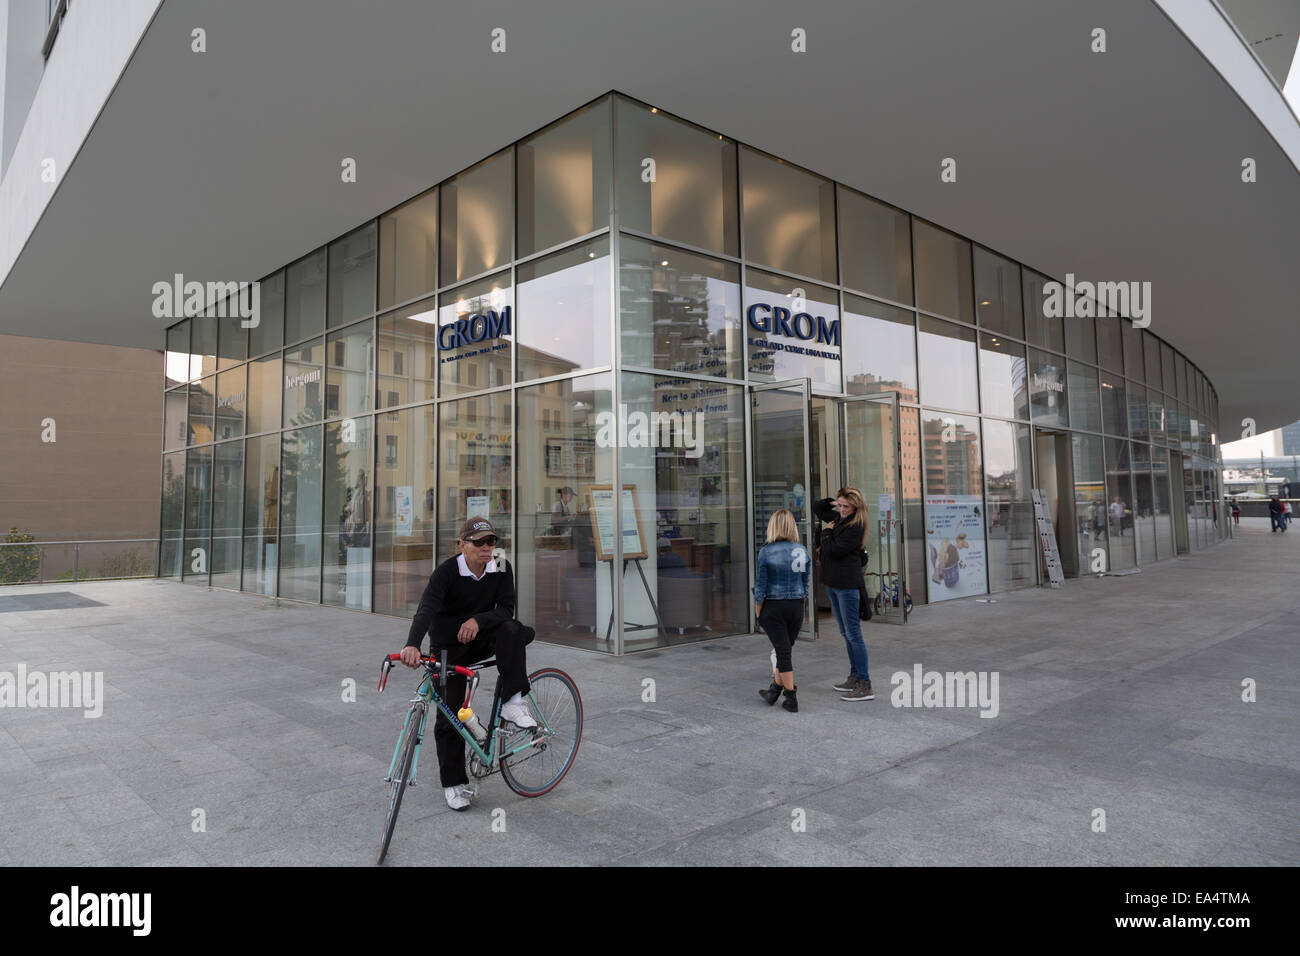 Grom artisanal gelateria in Milan, Piazza Gae Aulenti, Porta Nuova Business District Stock Photo